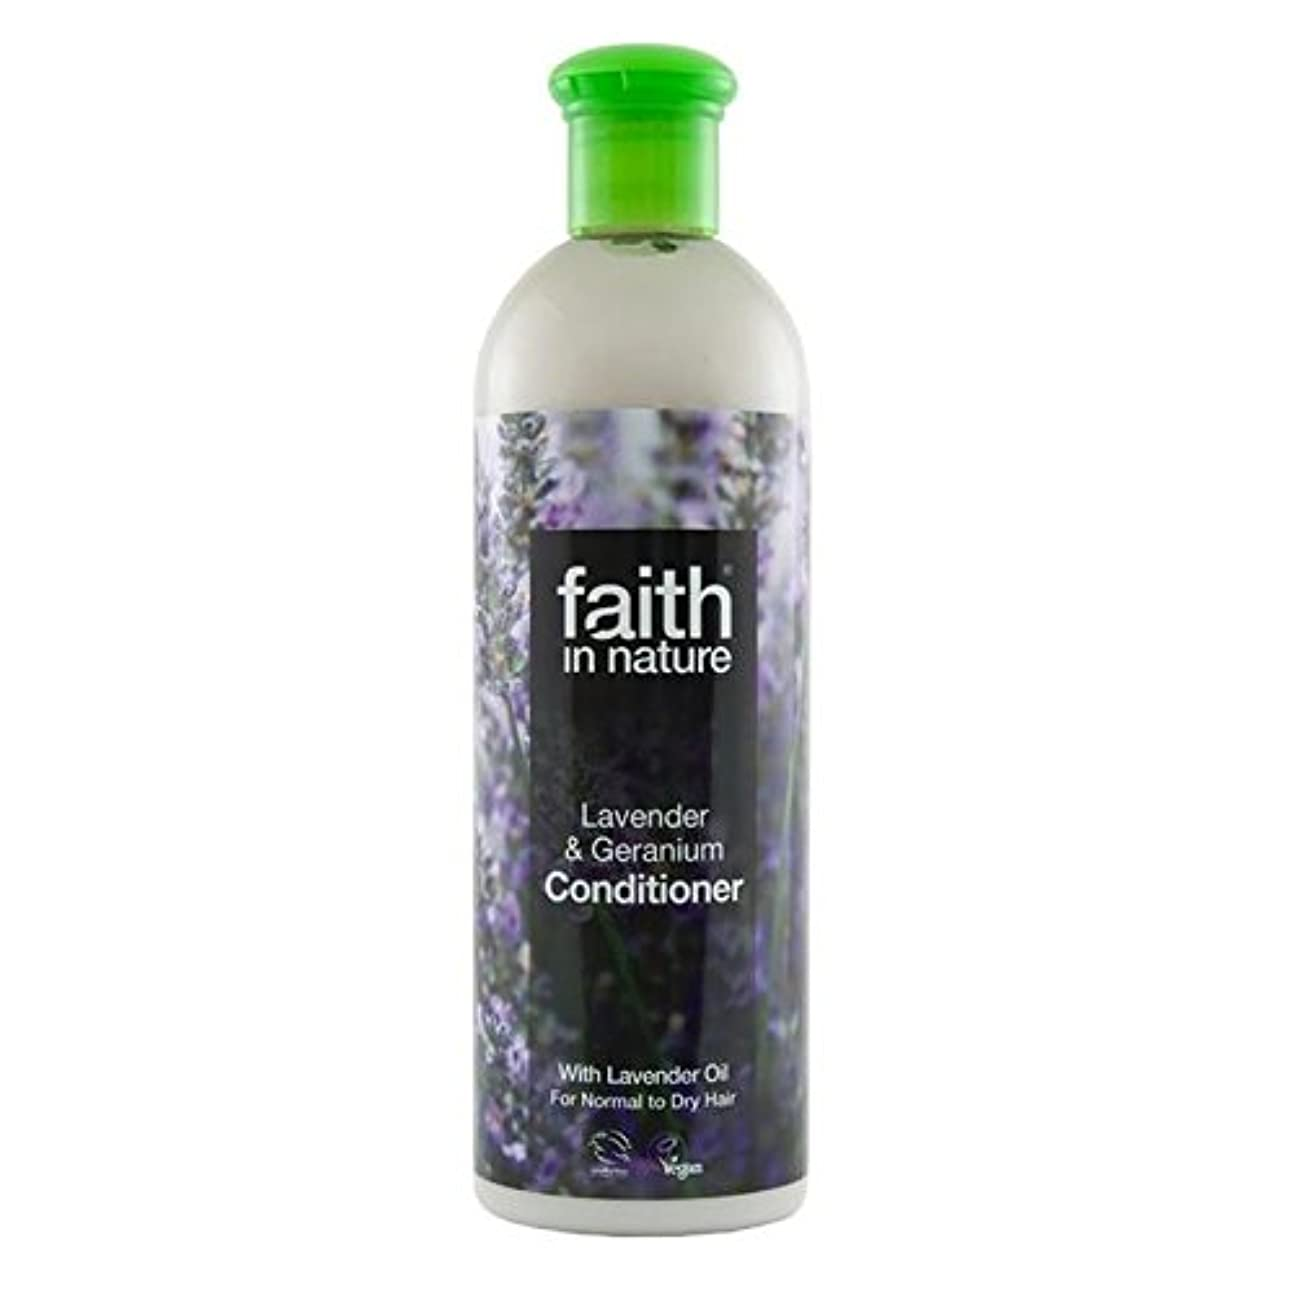 Faith in Nature Lavender & Geranium Conditioner 400ml (Pack of 4) - (Faith In Nature) 自然ラベンダー&ゼラニウムコンディショナー400...